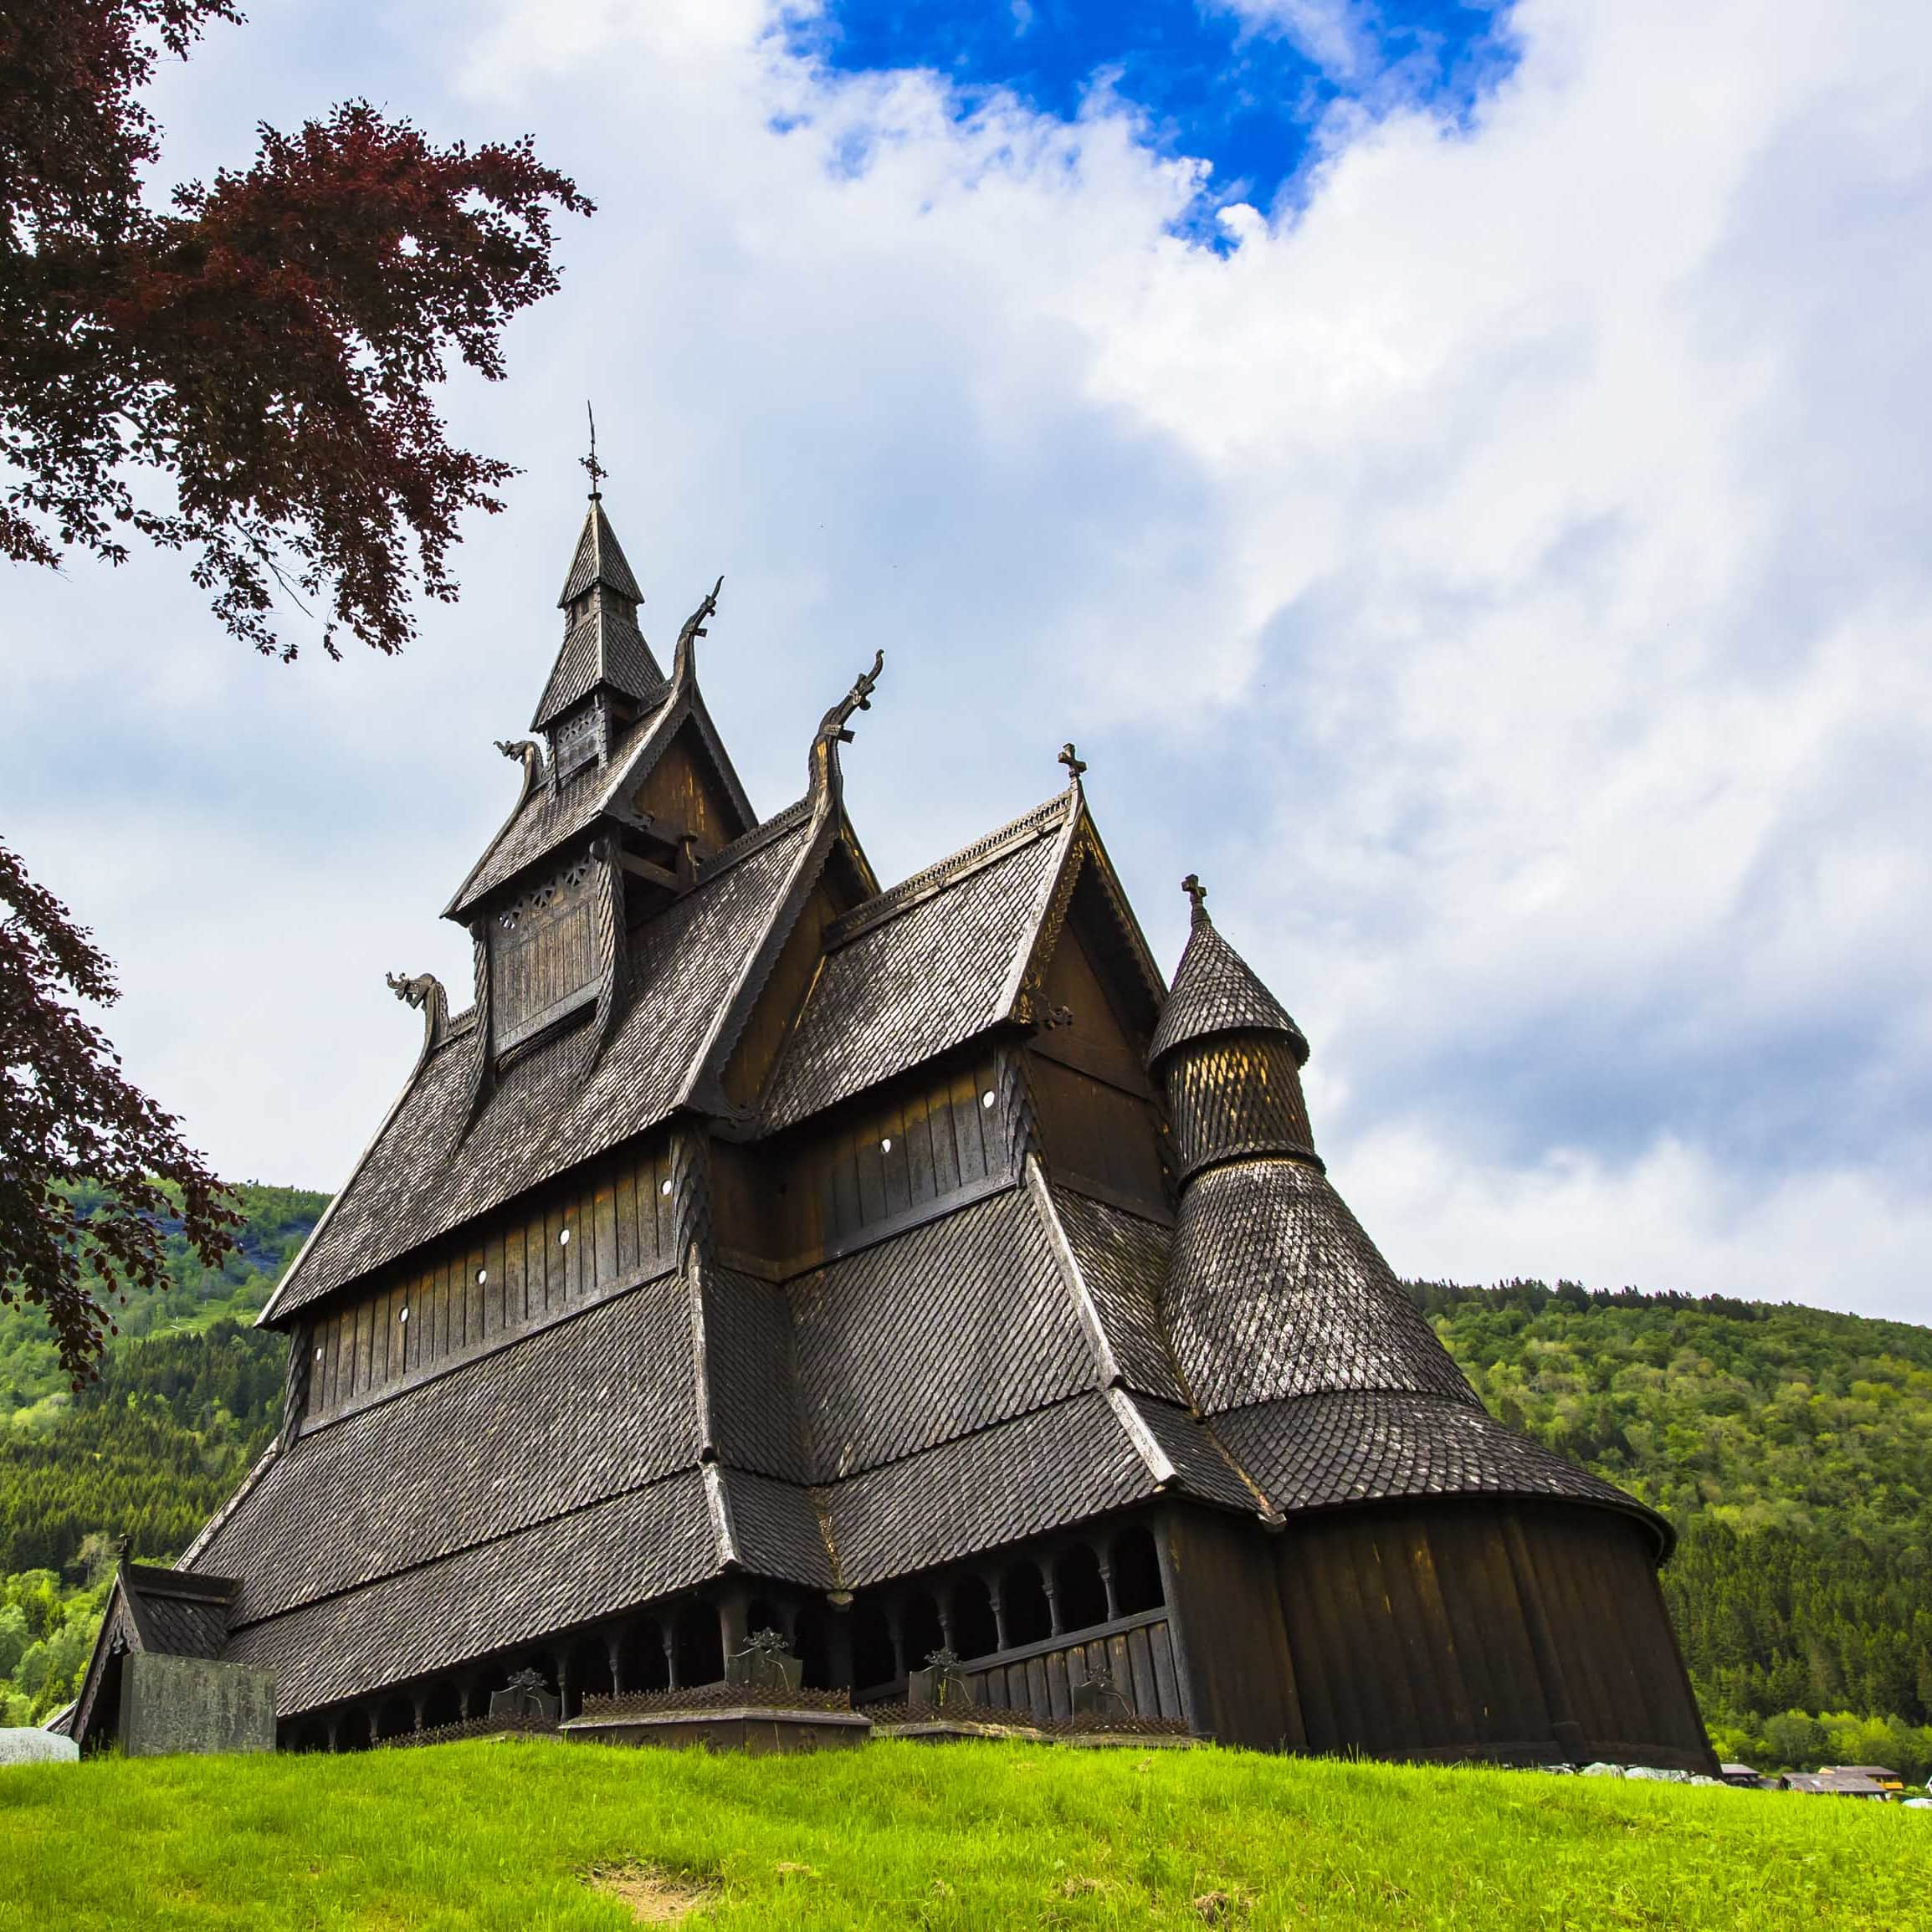 A view of the brown wodden church named Hopperstad Stave Church located in Vik in Norway.